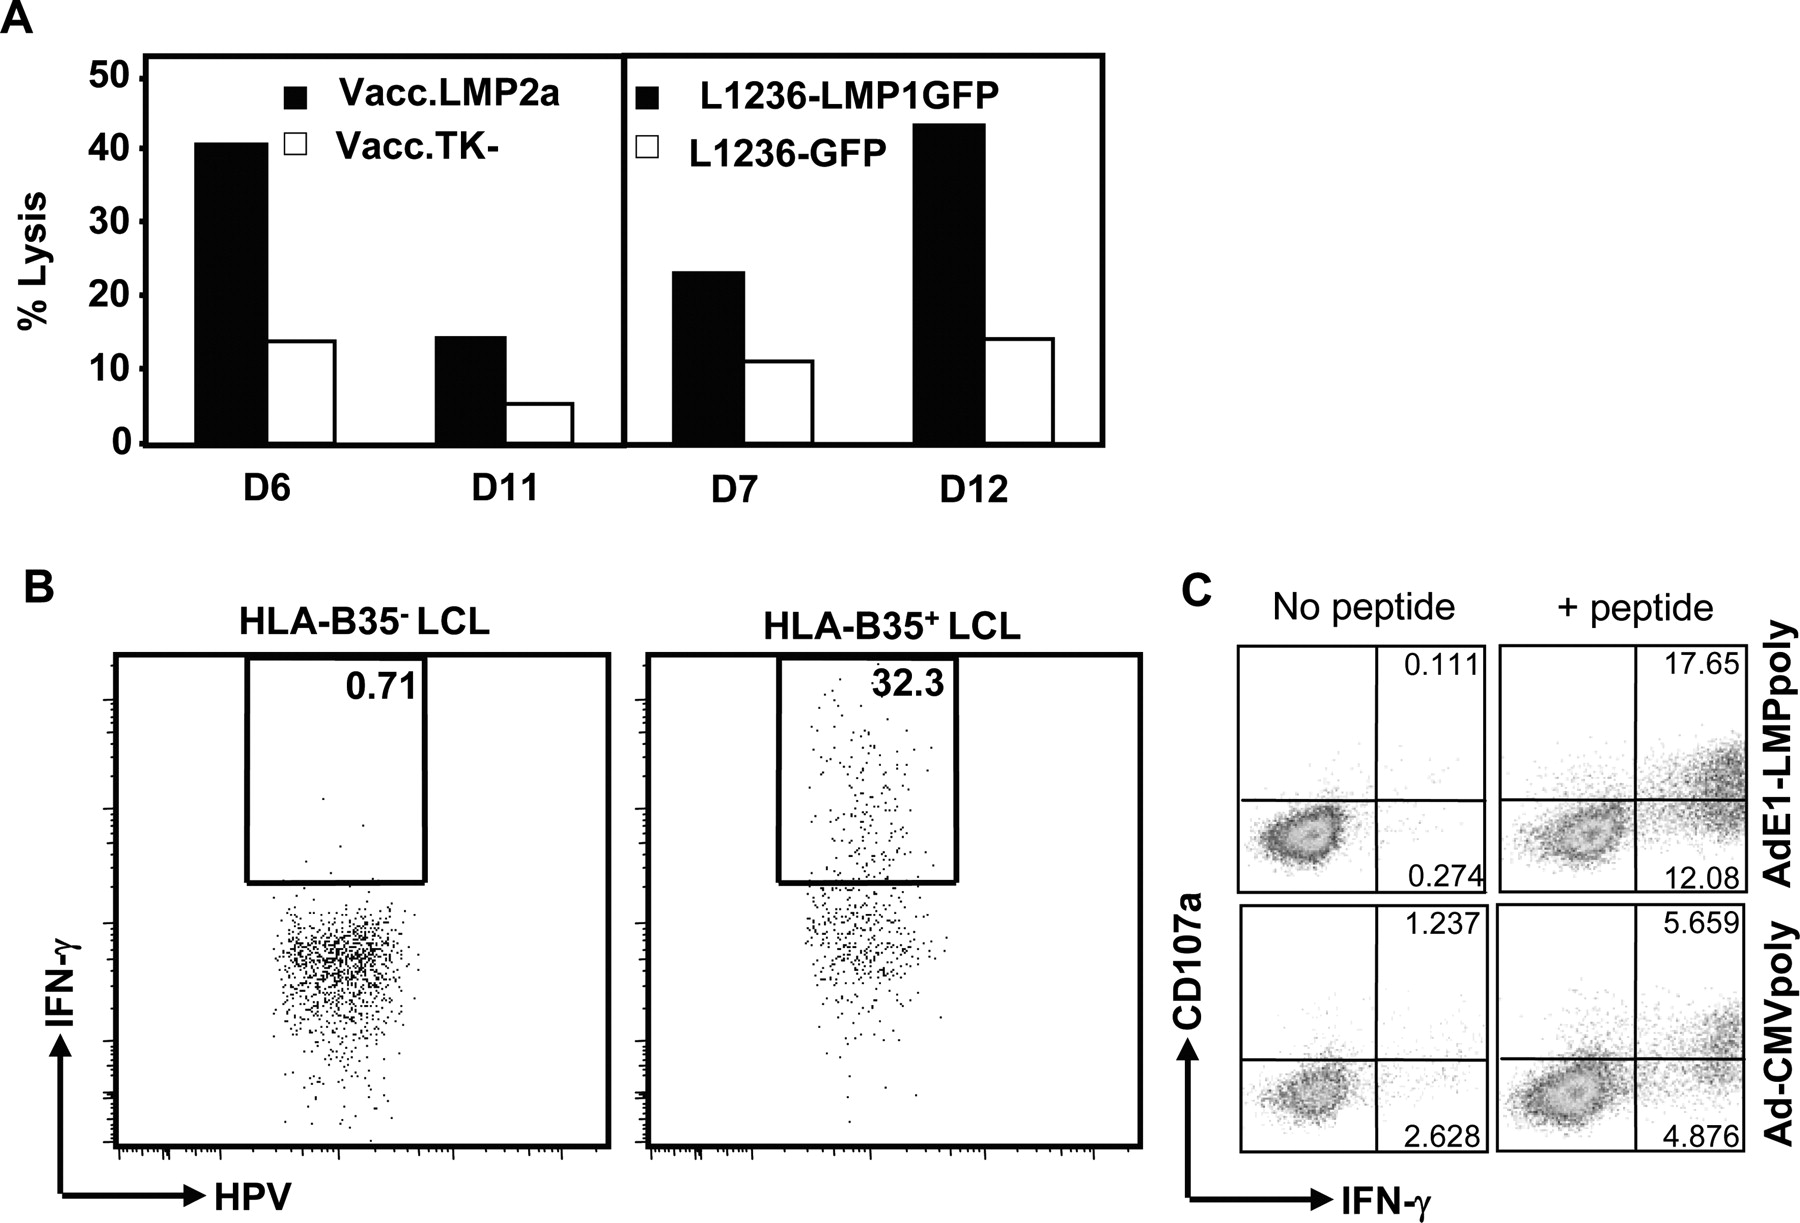 Functional Reversion of Antigen-Specific CD8+ T Cells from Patients on